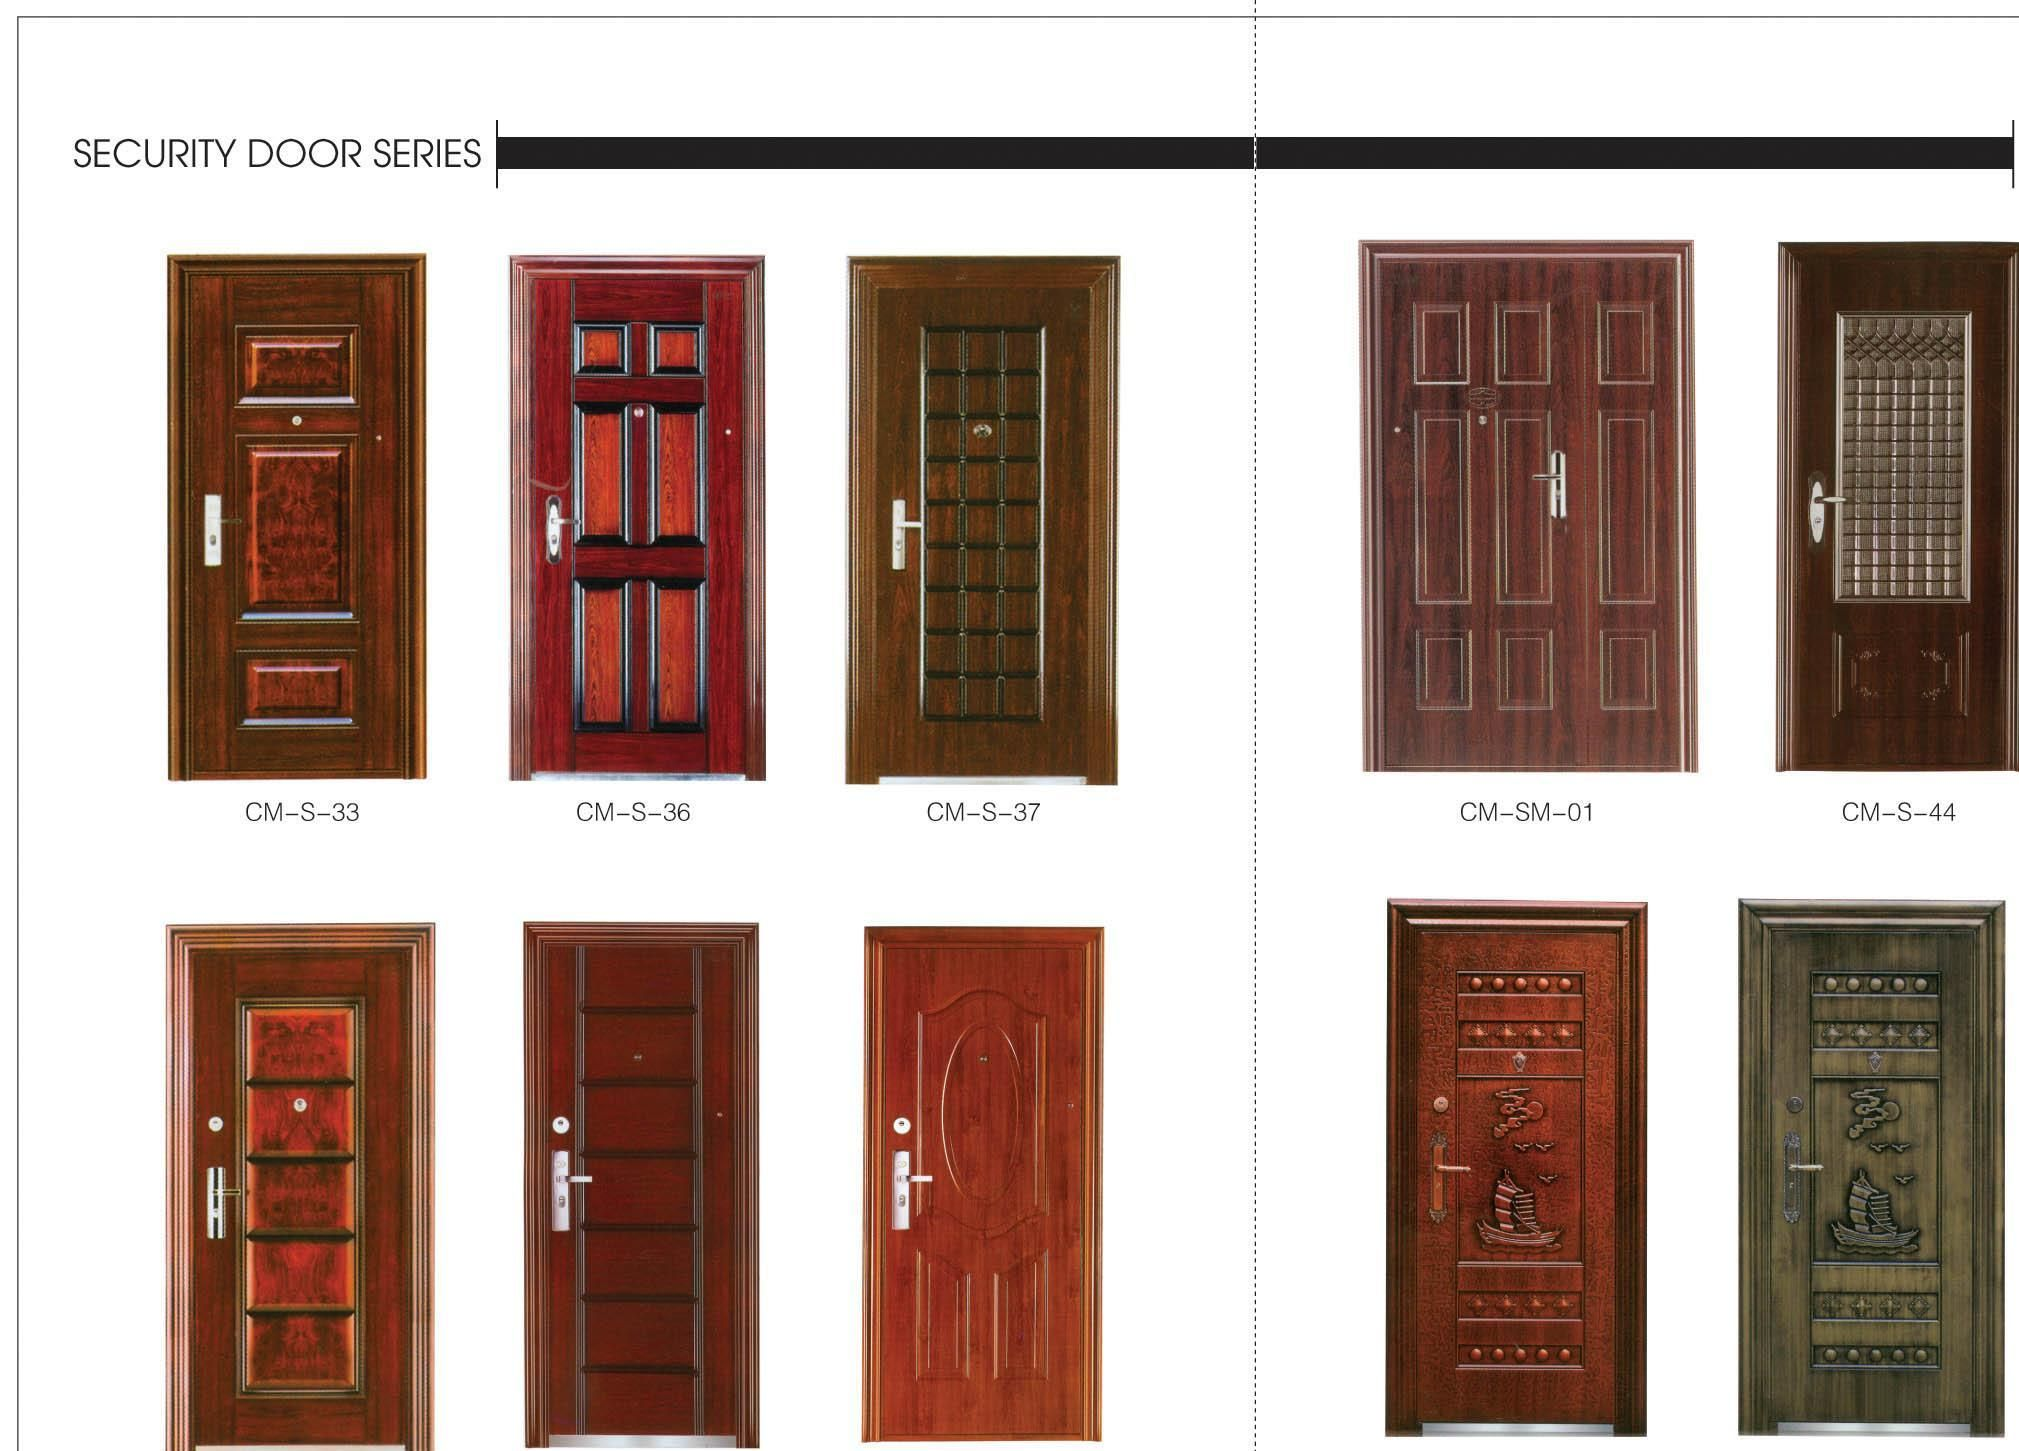 Exterior Doors With Glass Entry Door Oak Entry Door Double Entry Front Doors  Glass Frontexterior Doors With Glass Entry Door Oak Entry Door Double Entry